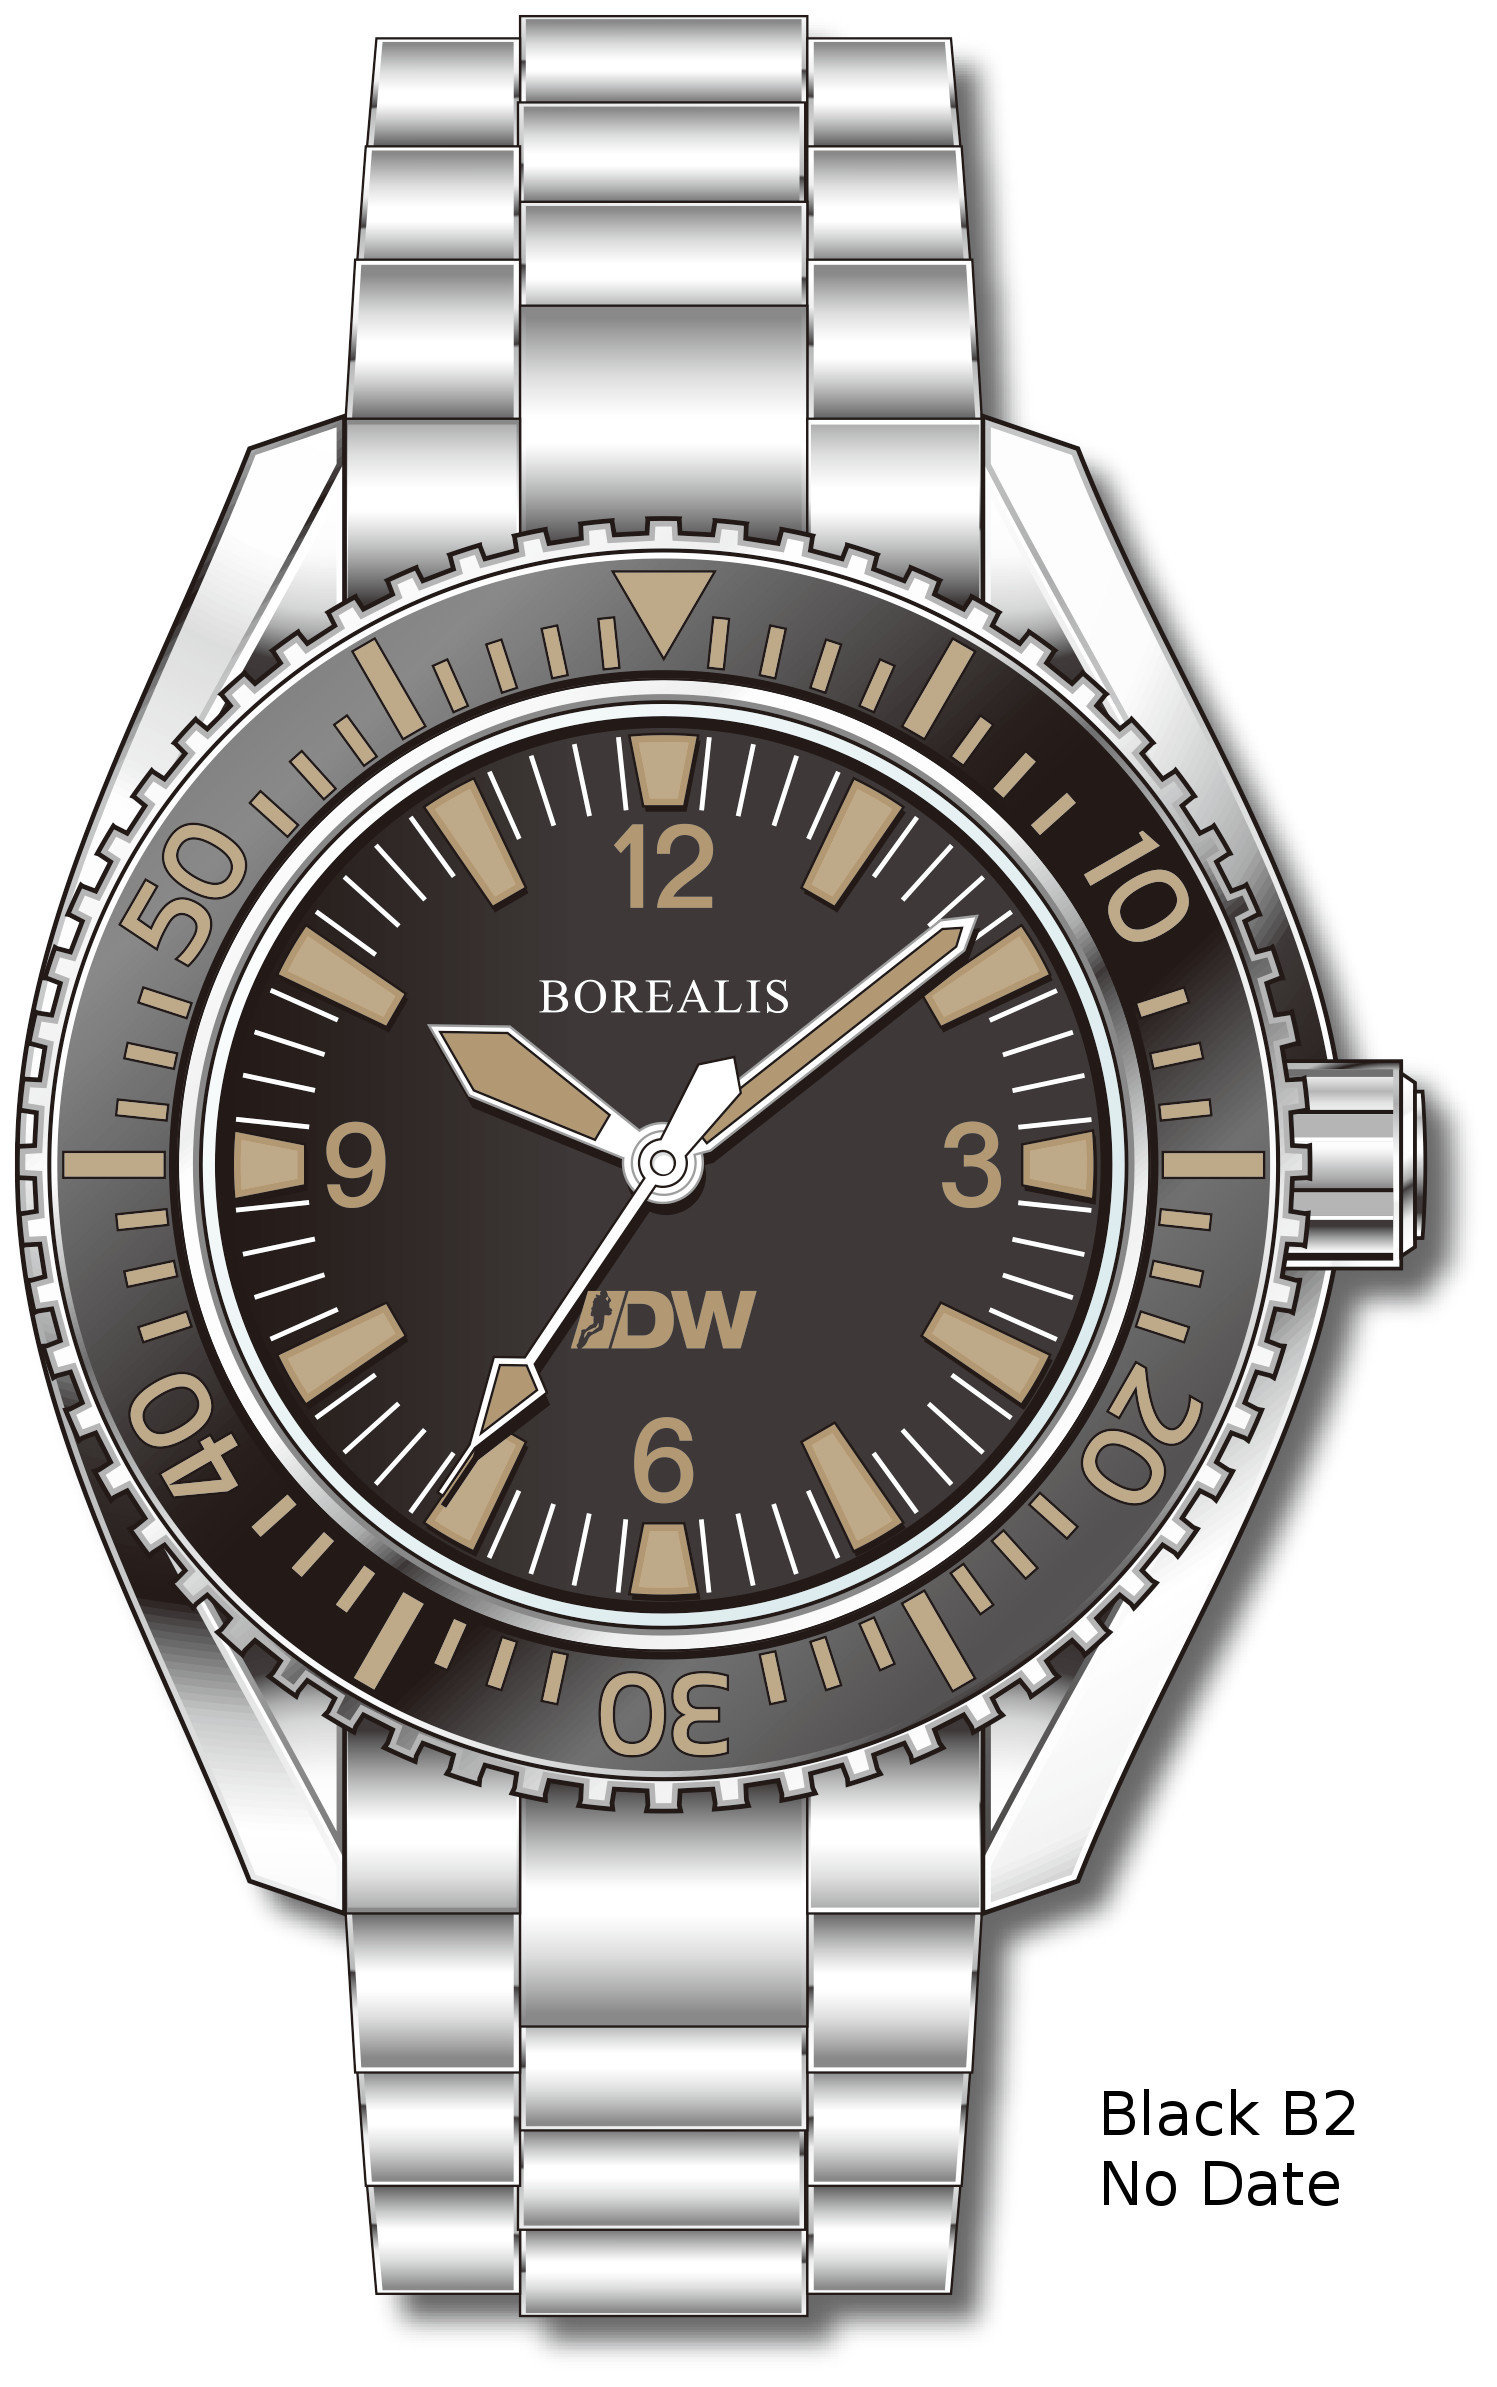 Pre-Order Borealis Estoril 300 for Diver's Watches Facebook Group Black Dial Arabic Numbers Date Black B2 No Date EDWFBGBLACKB2NDT